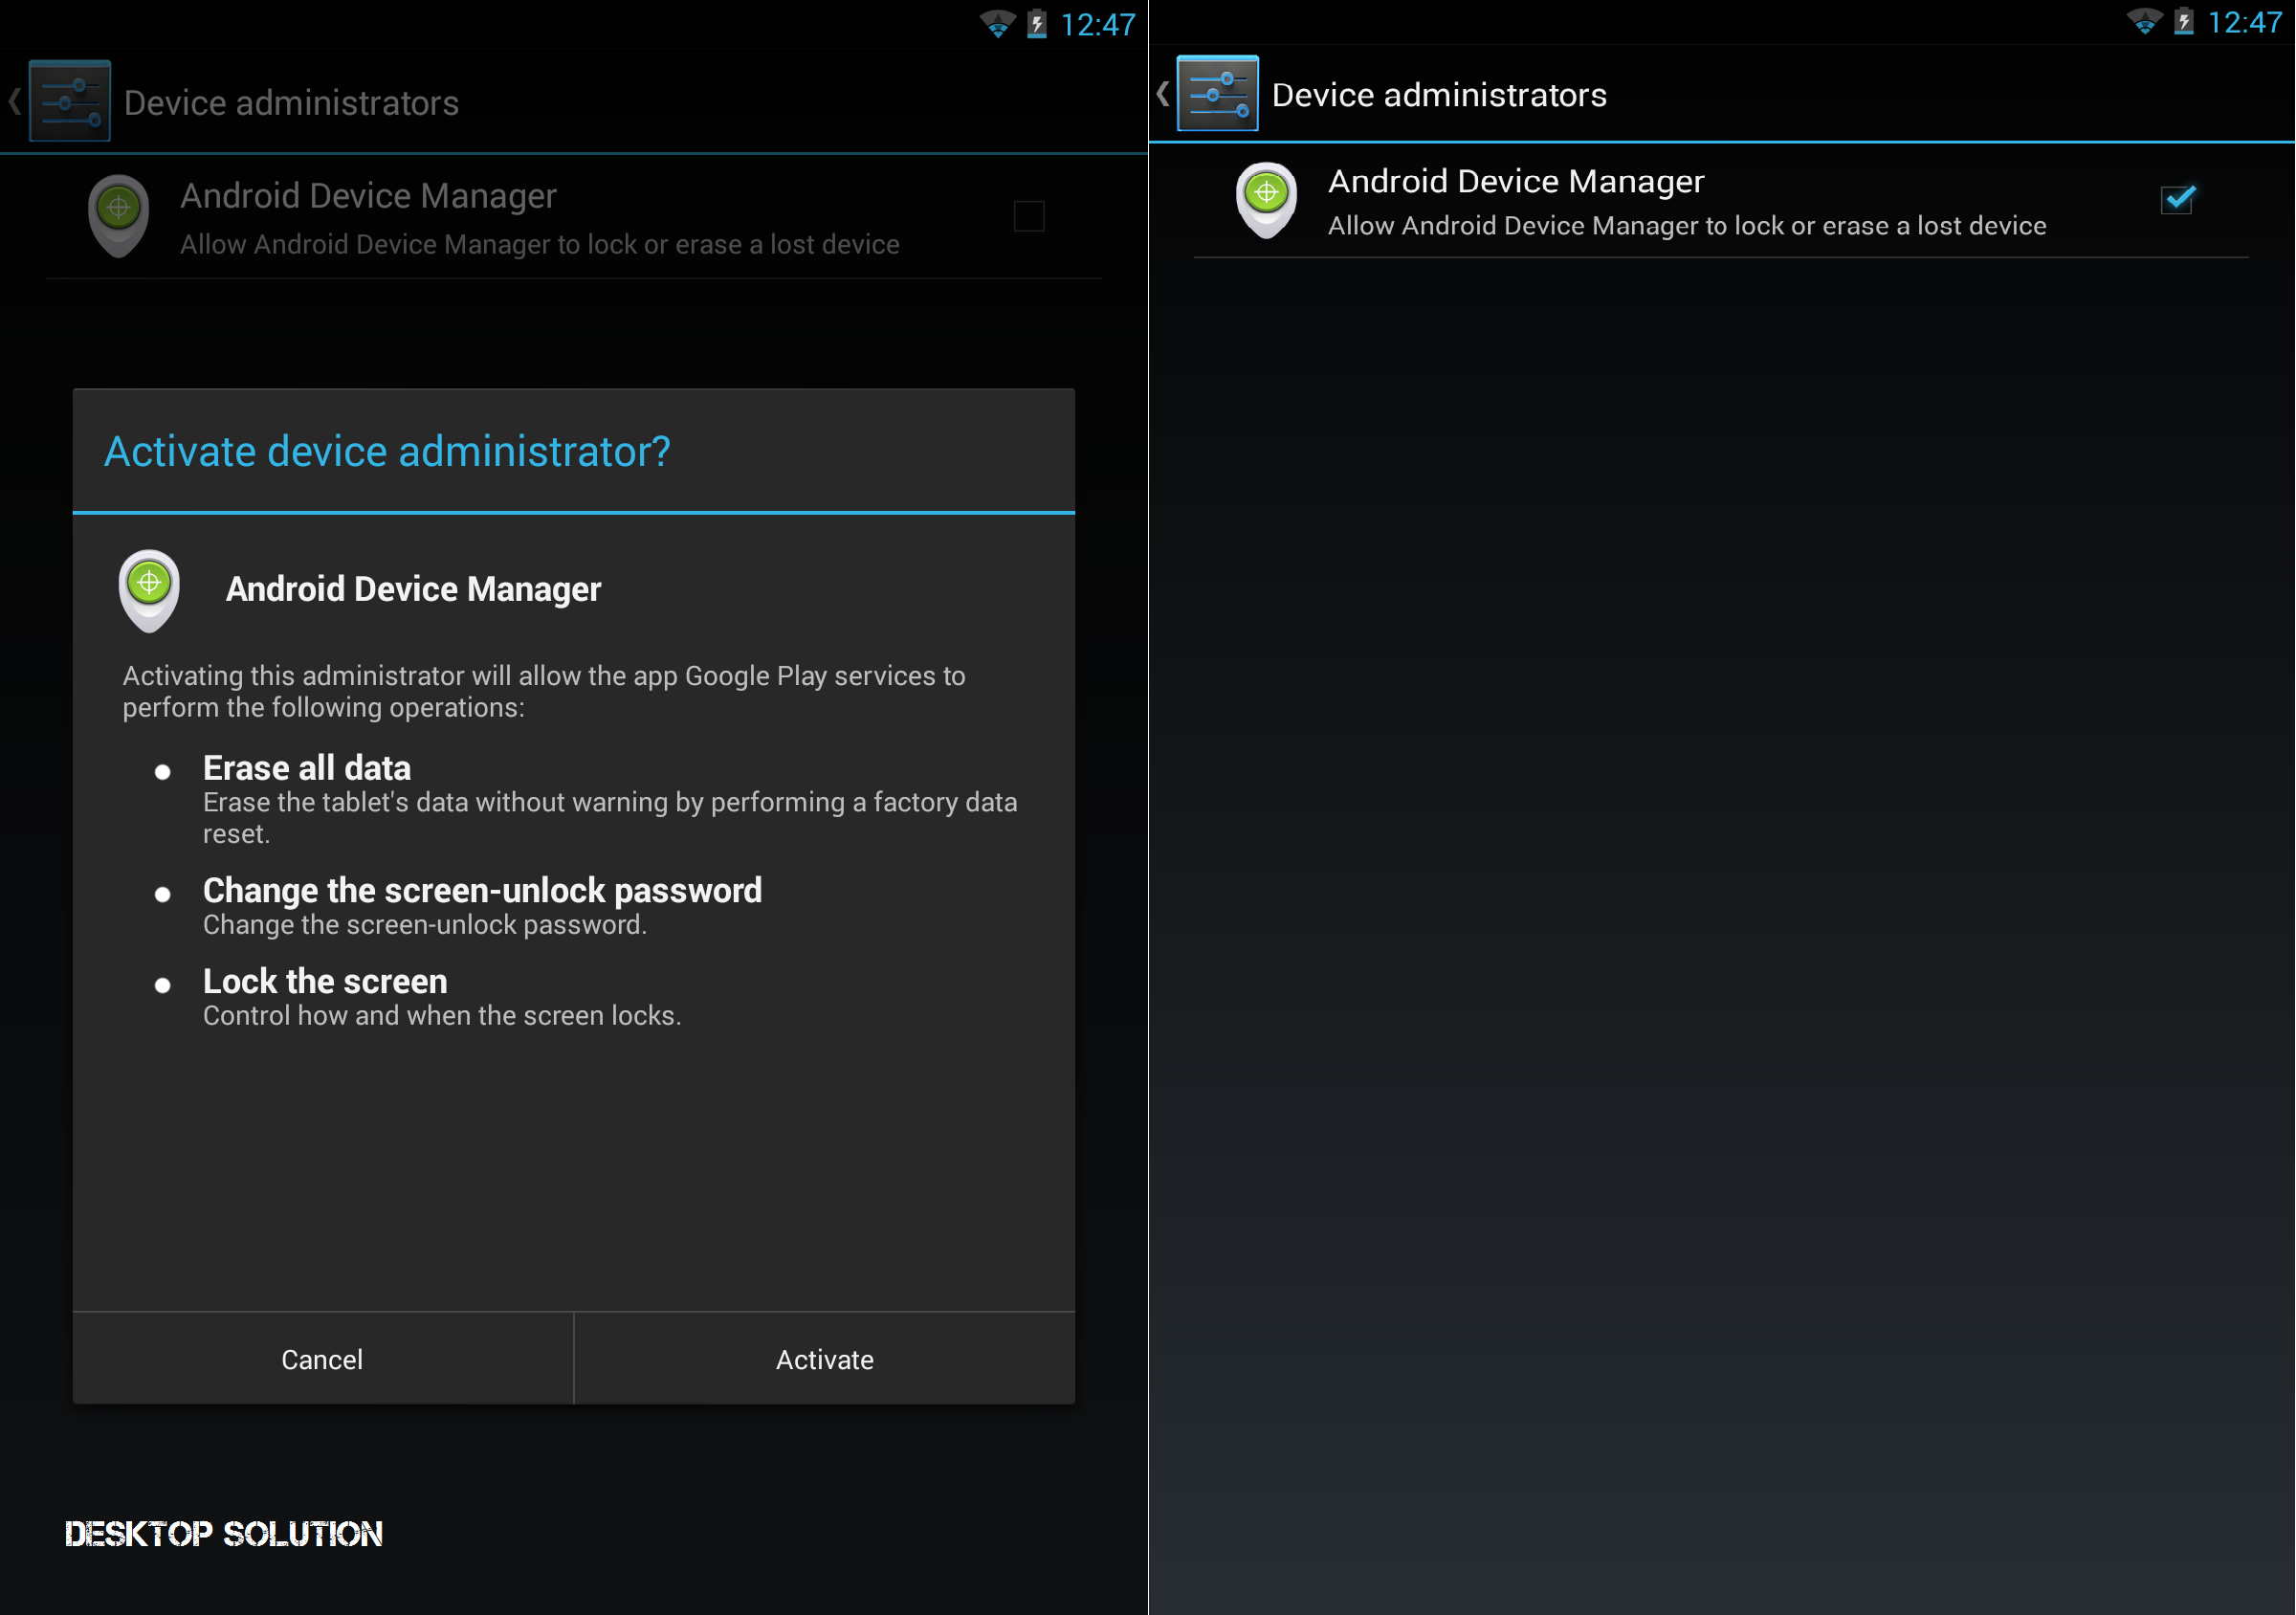 Android Device Manager 1.0 - Install & Admin